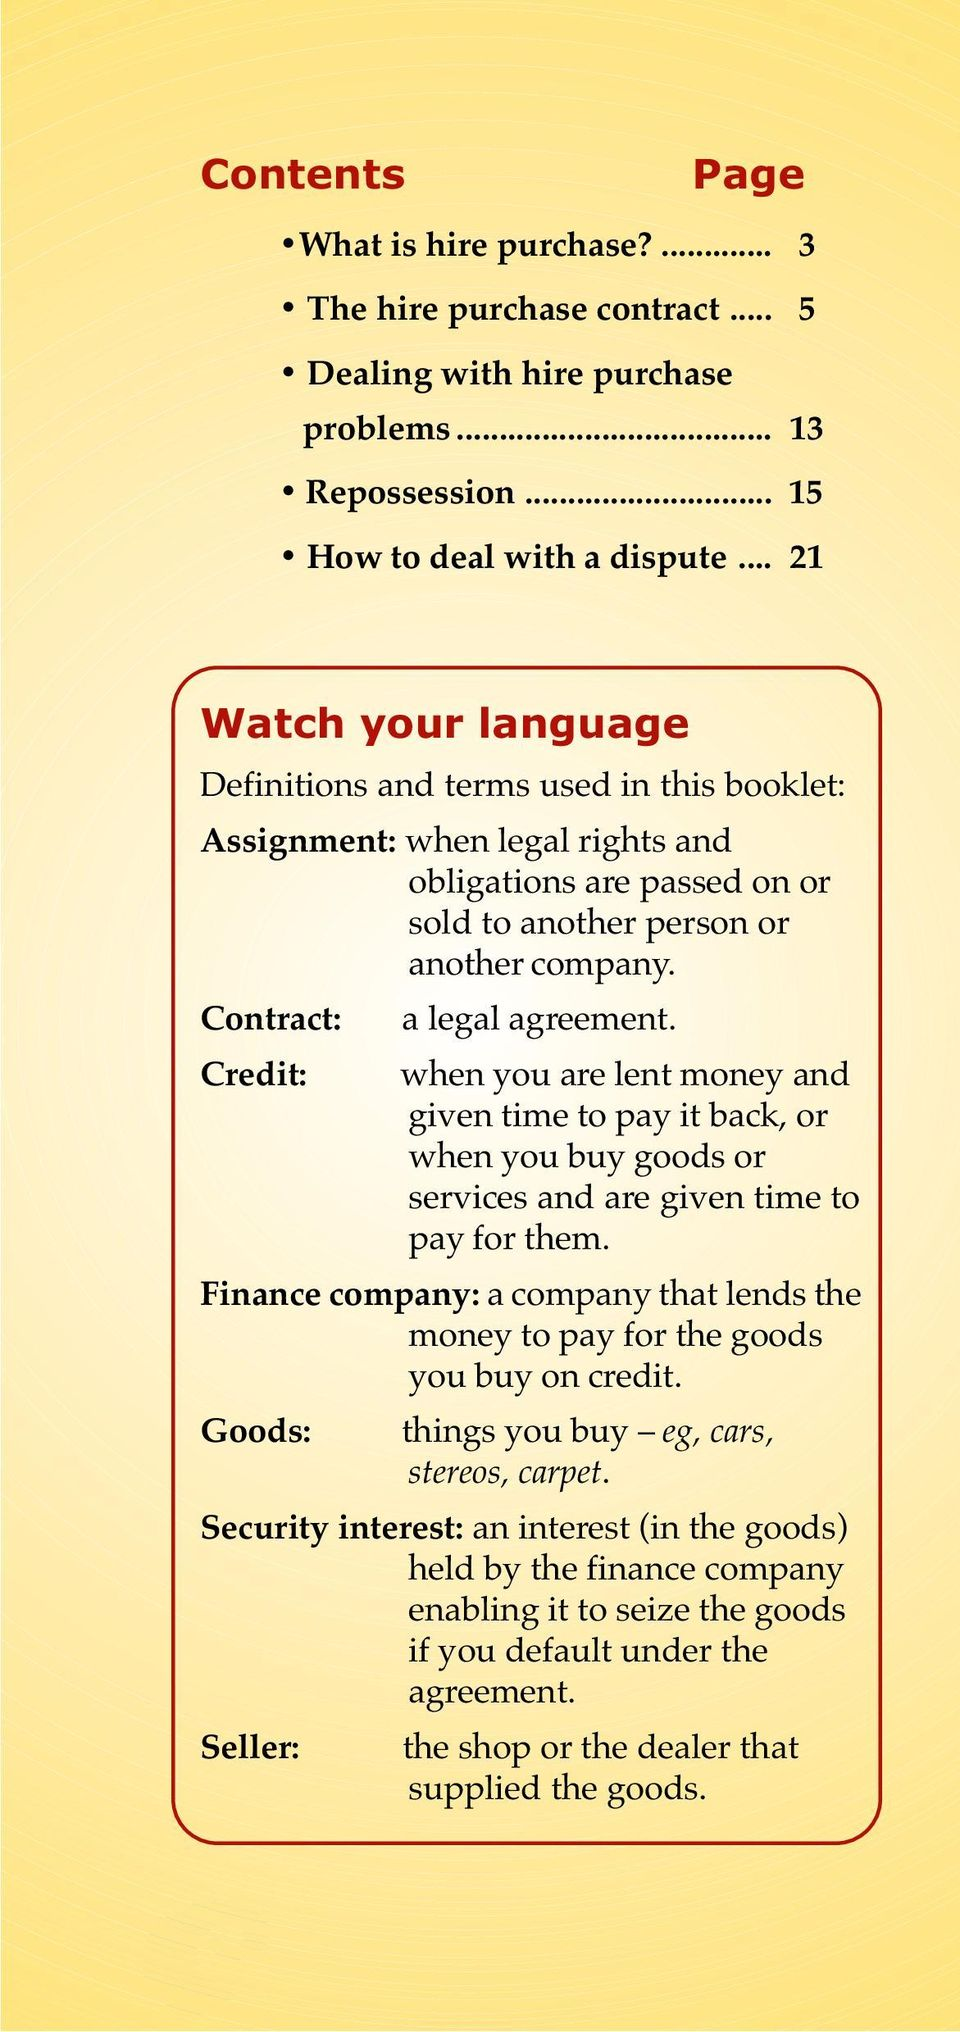 Contract: a legal agreement. Credit: when you are lent money and given time to pay it back, or when you buy goods or services and are given time to pay for them.